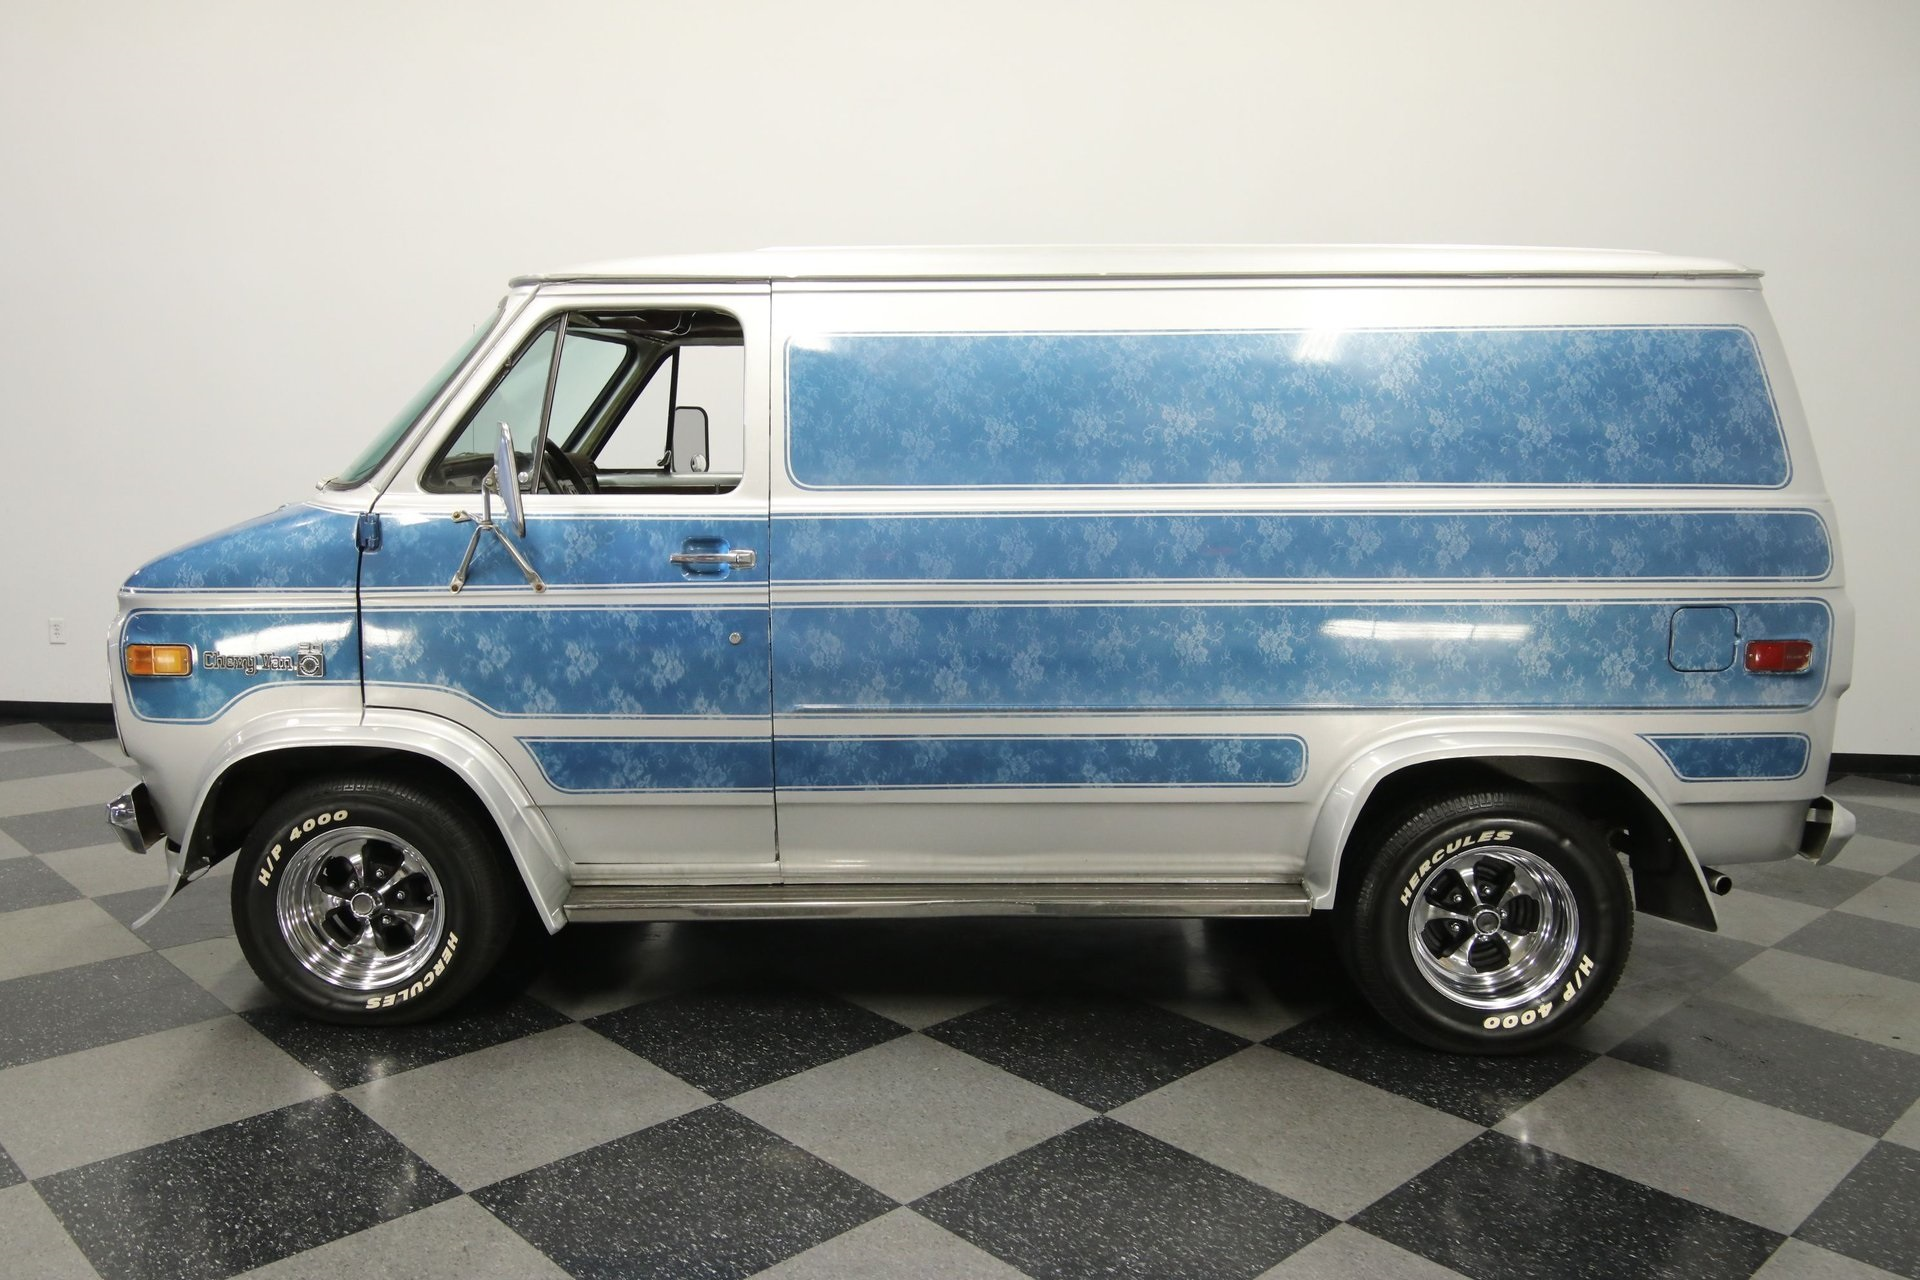 1977-chevrolet-g20-shorty-van-qddj2-z